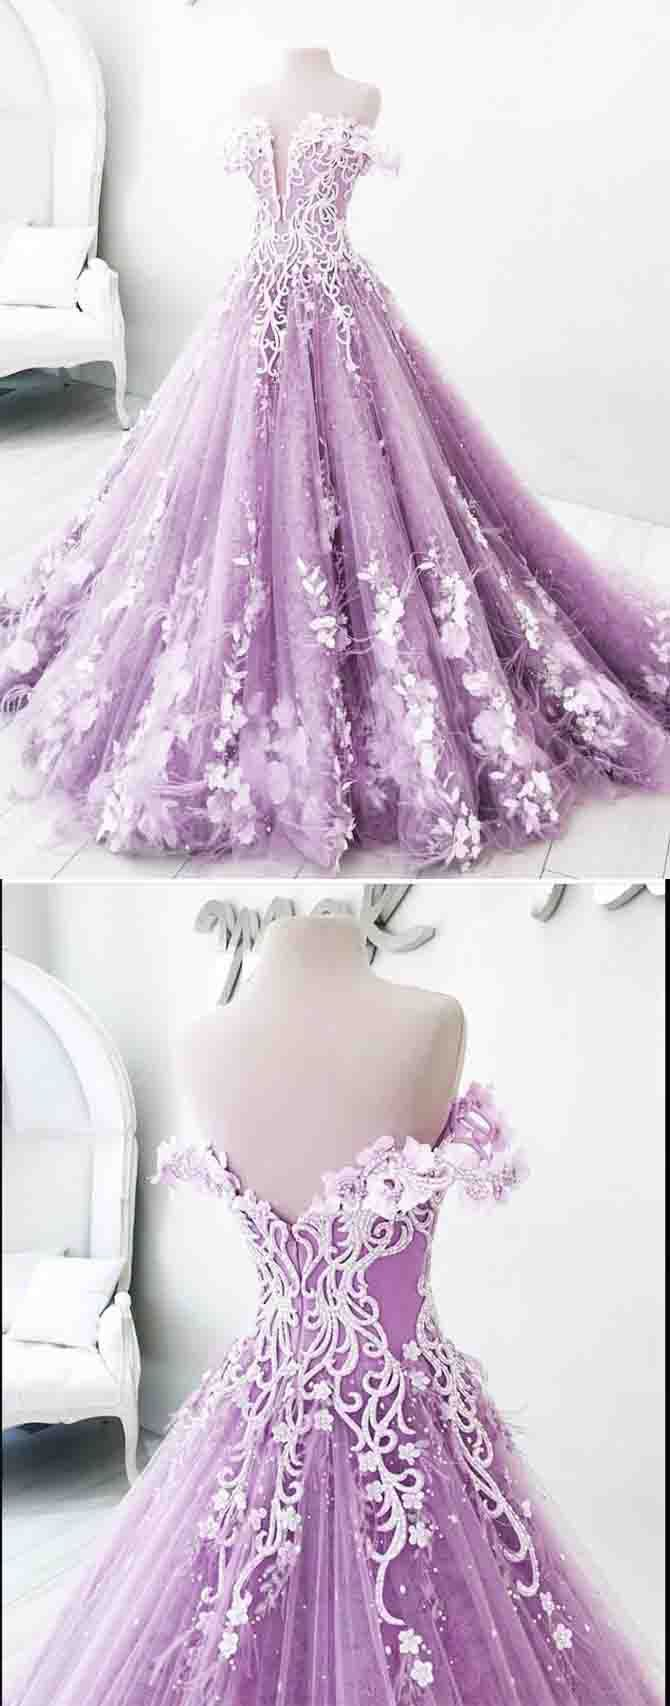 Ball Gown Prom Dresses Off The Shoulder Prom Dress Lilac Prom Dresses Appliques Prom Dress Floor Length Ball Gown Evening Dress Ds489 Purple Prom Dress Lilac Prom Dresses Ball Gowns [ 1706 x 670 Pixel ]